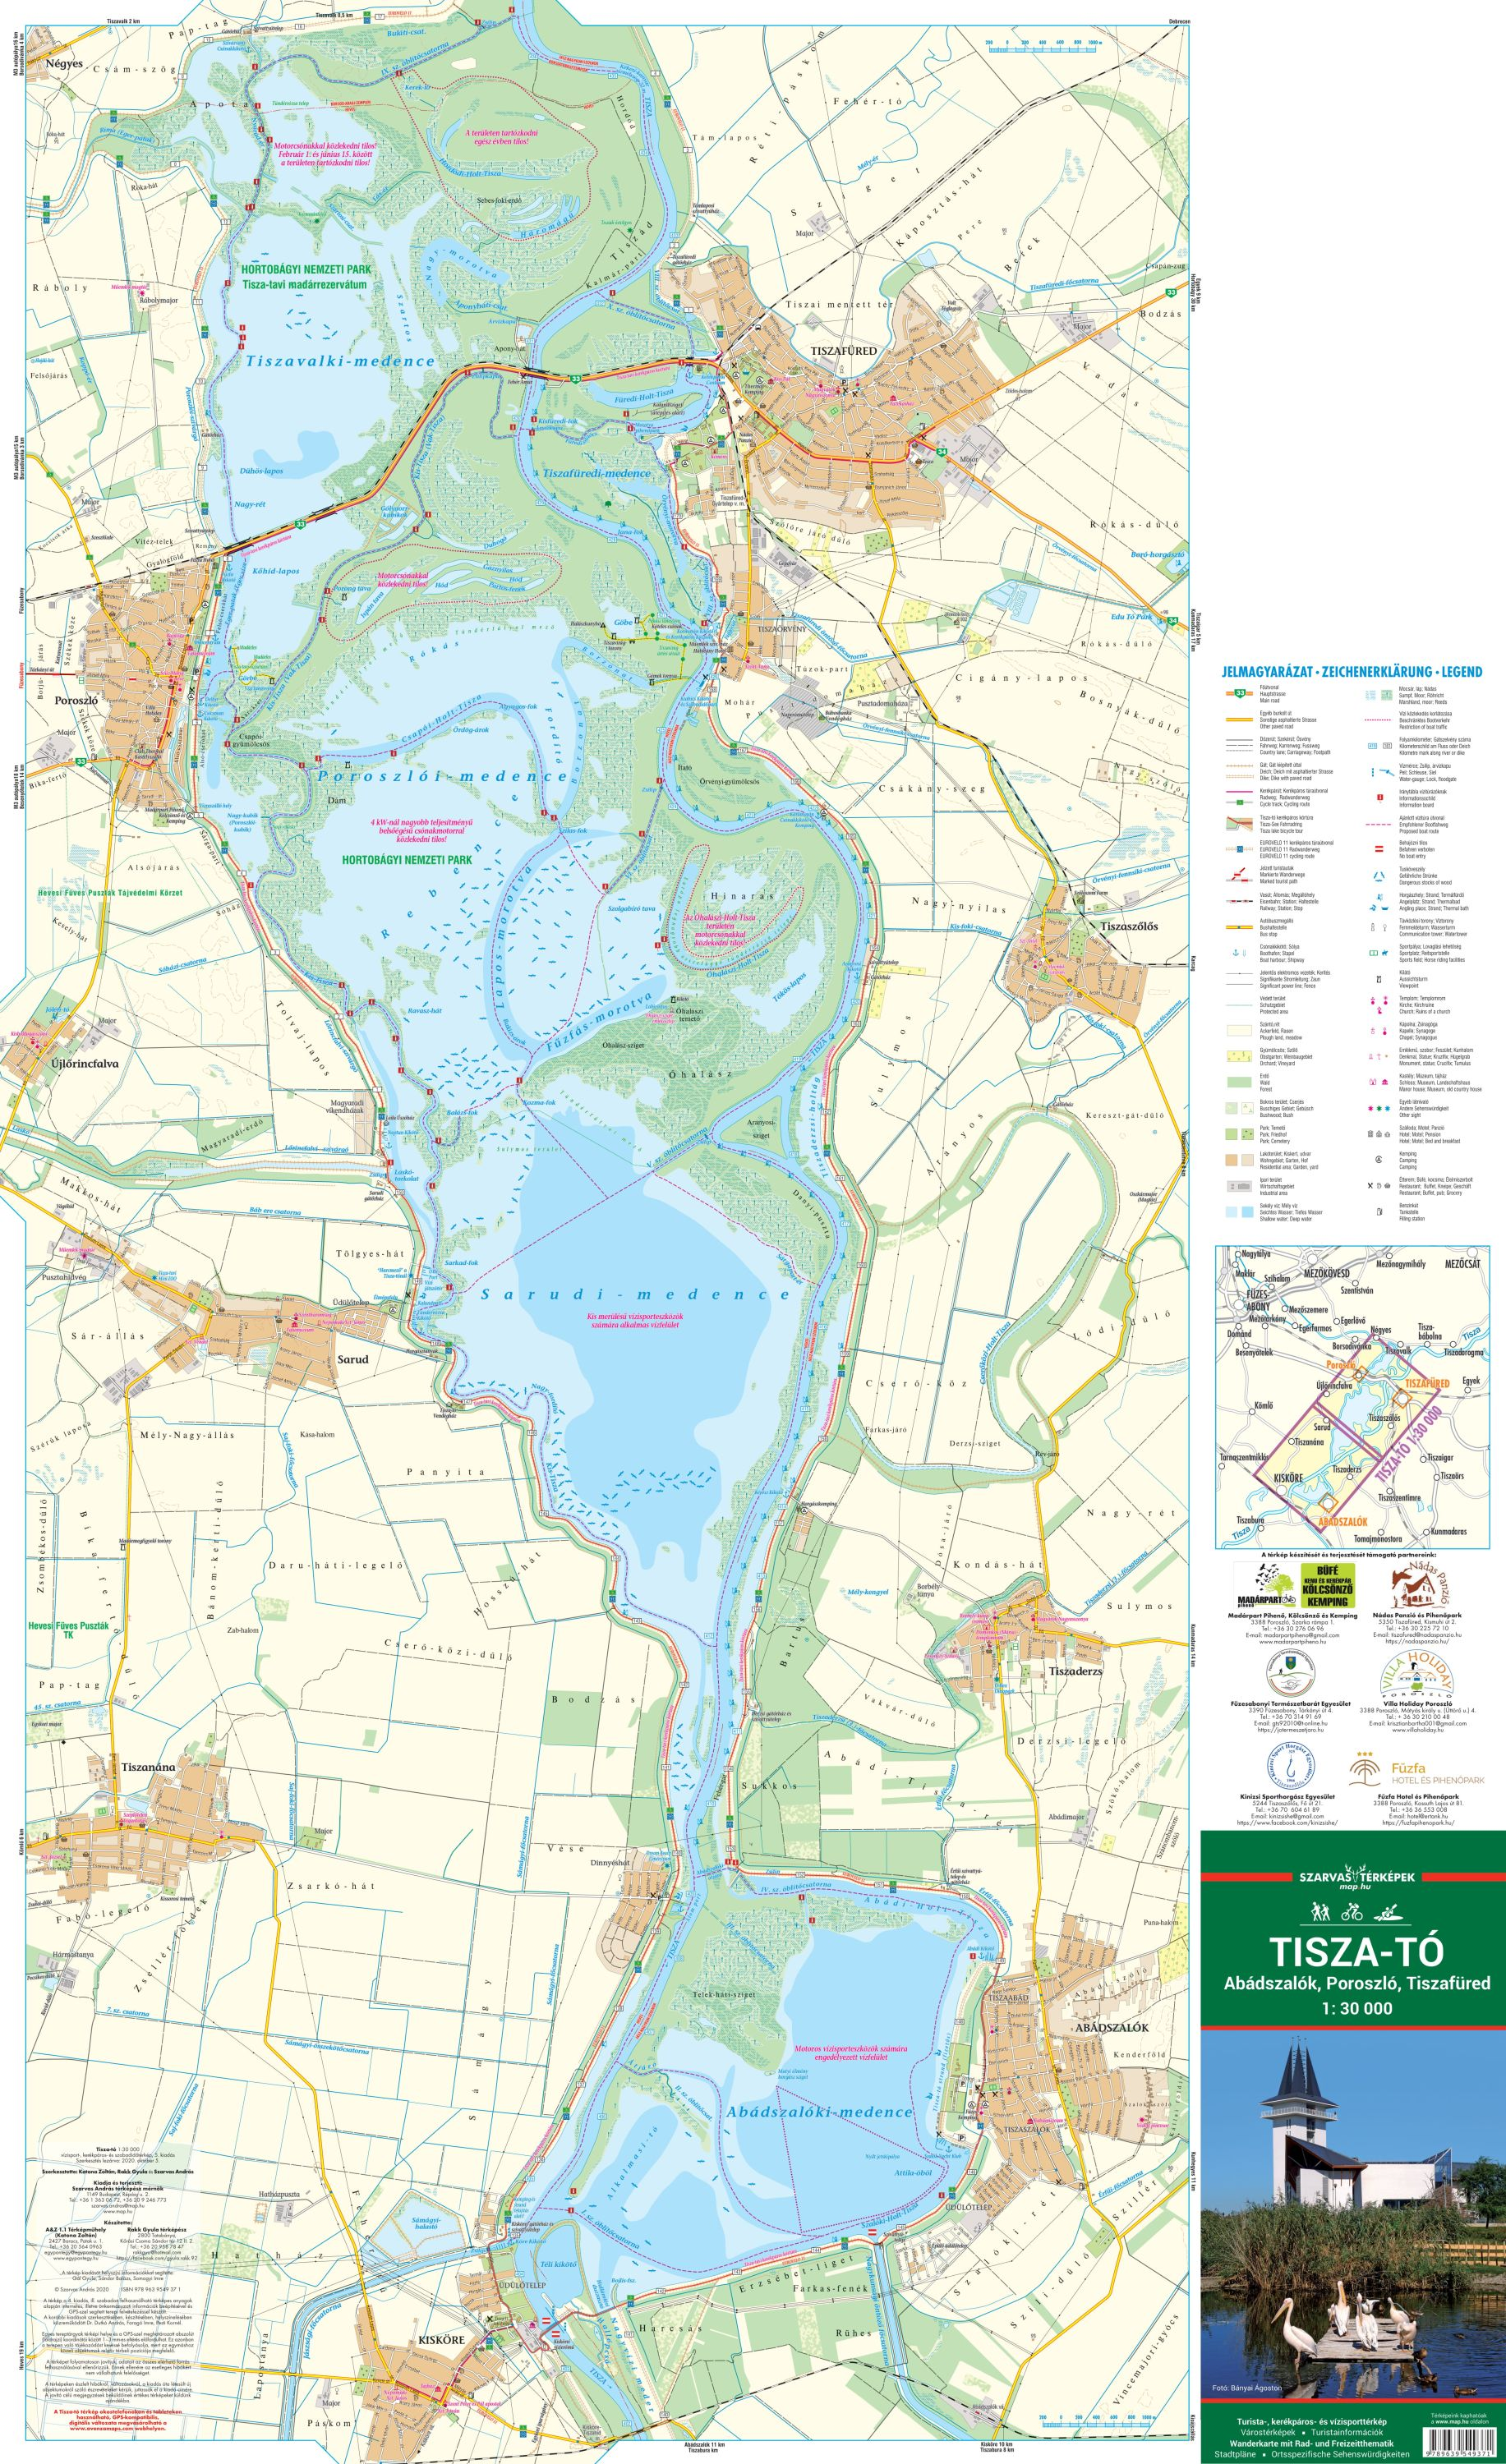 Area covered by the Tisza-lake map